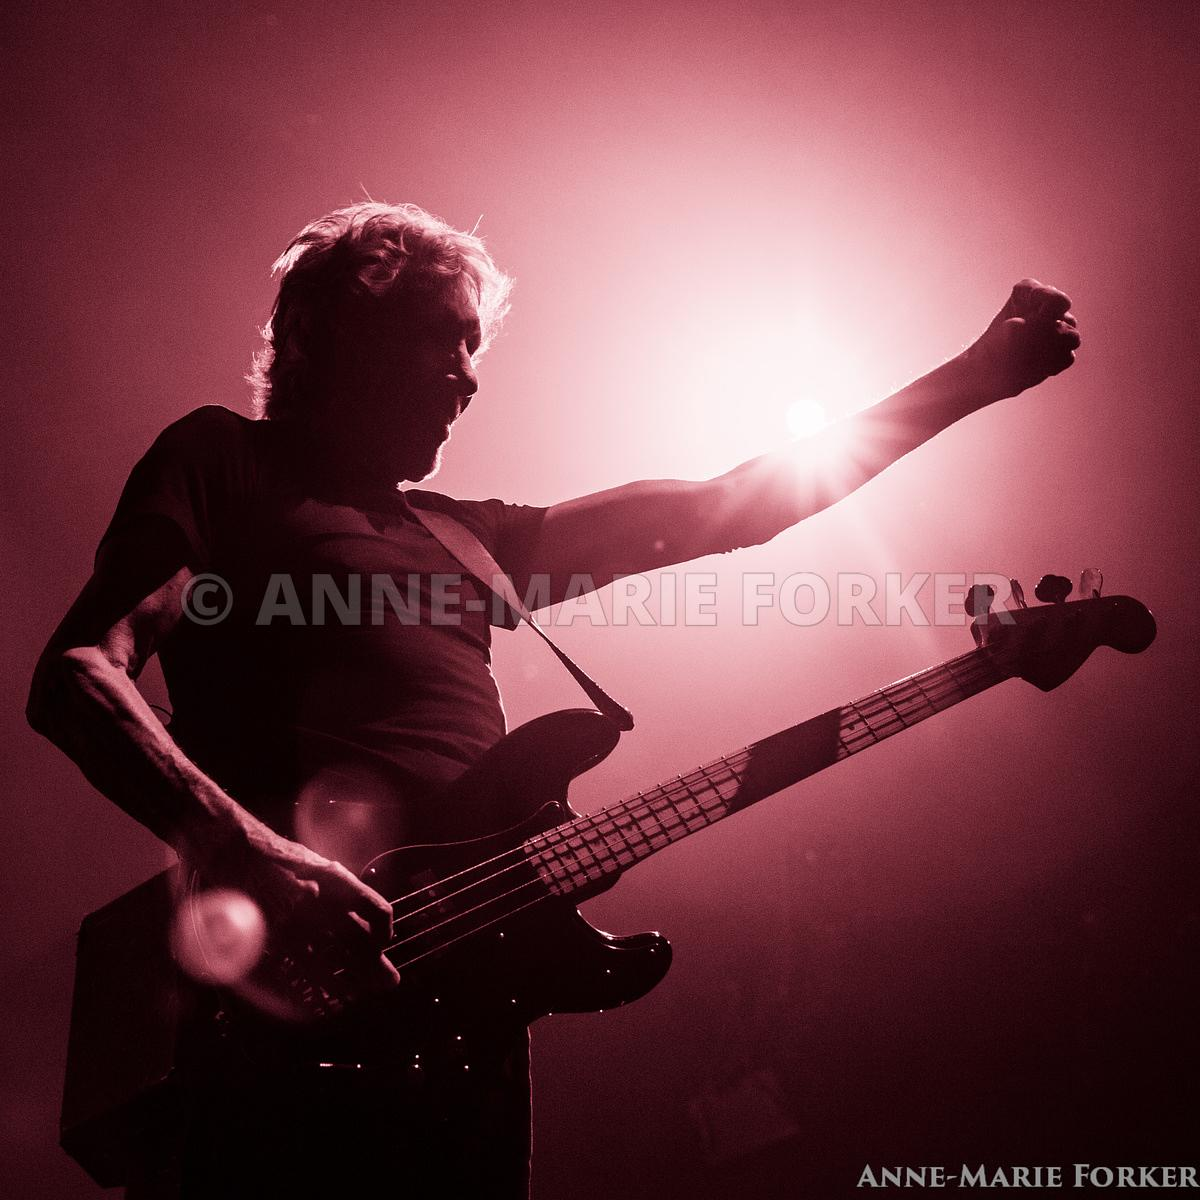 Roger_Waters_-_Anne-Marie_Forker-6771